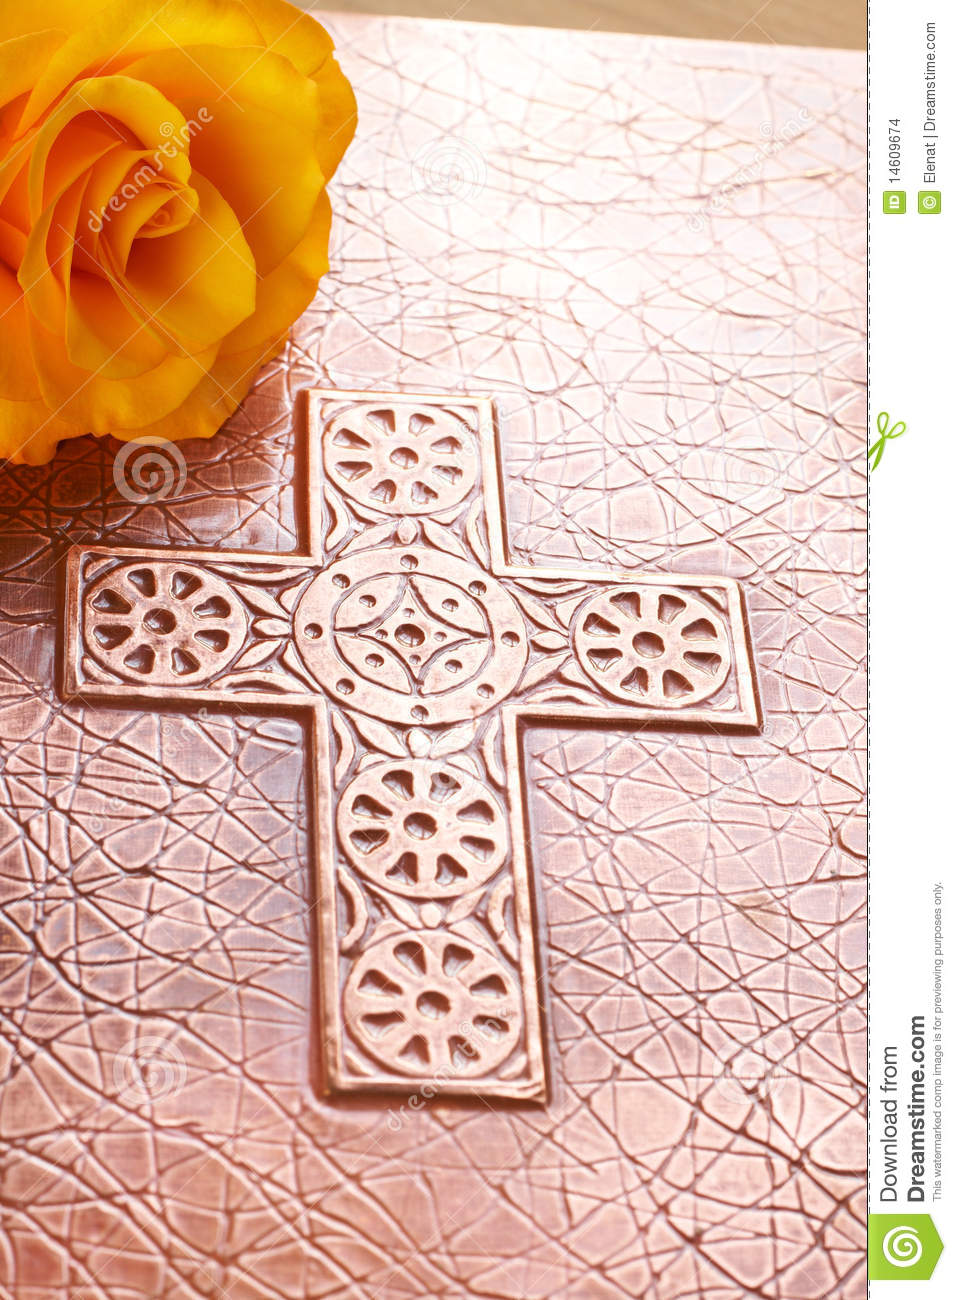 One Yellow Rose On The Bible With A Cross On The Bronze Cover